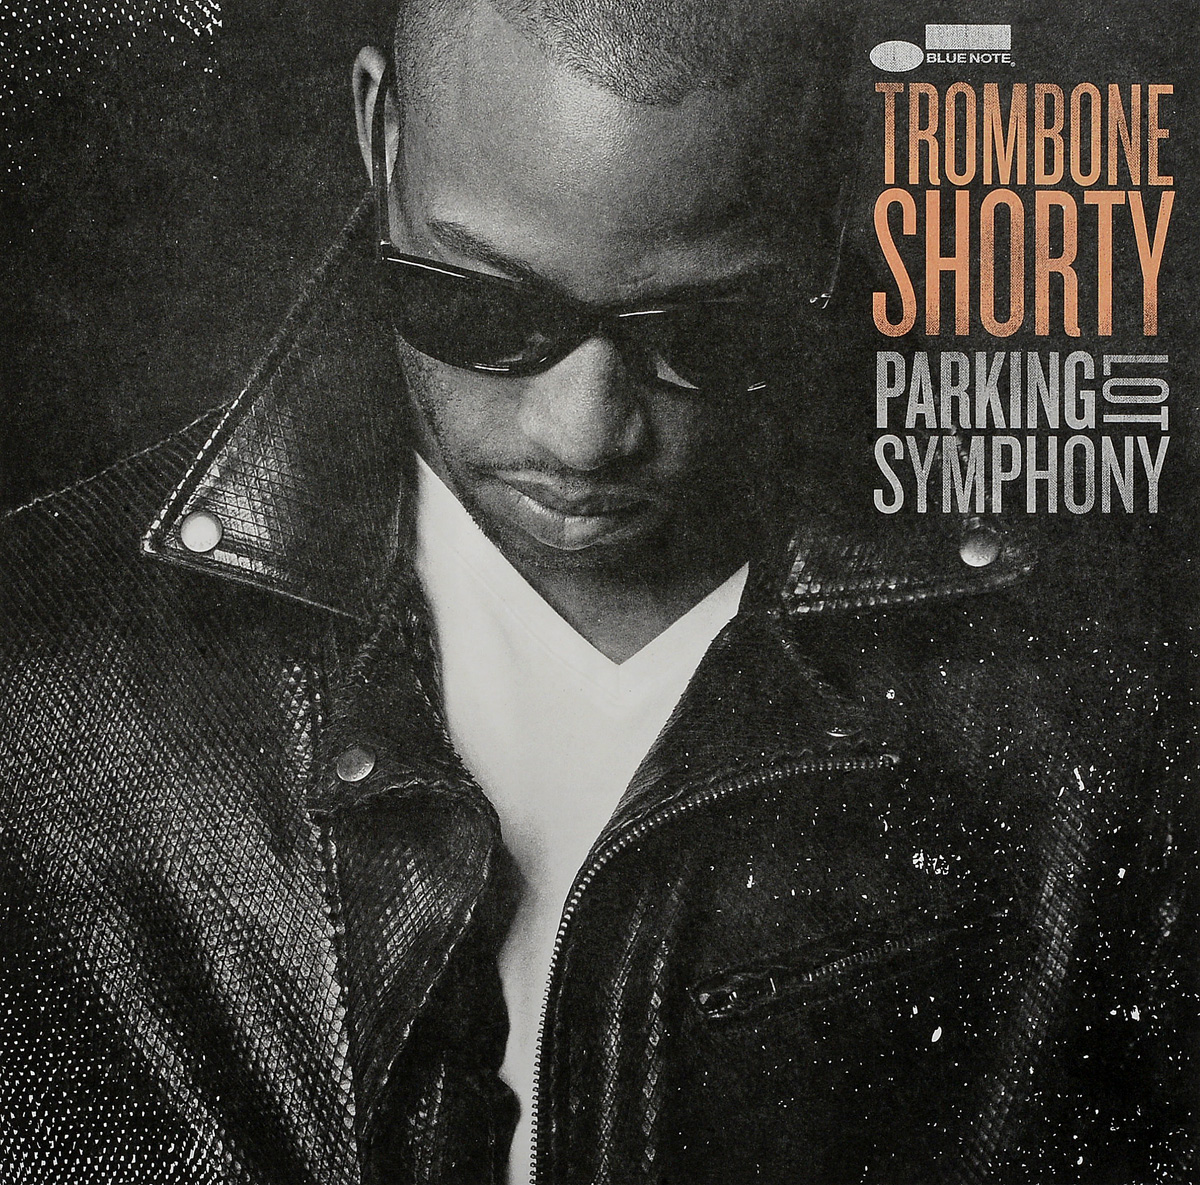 Тромбоун Шорти Trombone Shorty. Parking Lot Symphony (LP) trombone shorty trombone shorty parking lot symphony